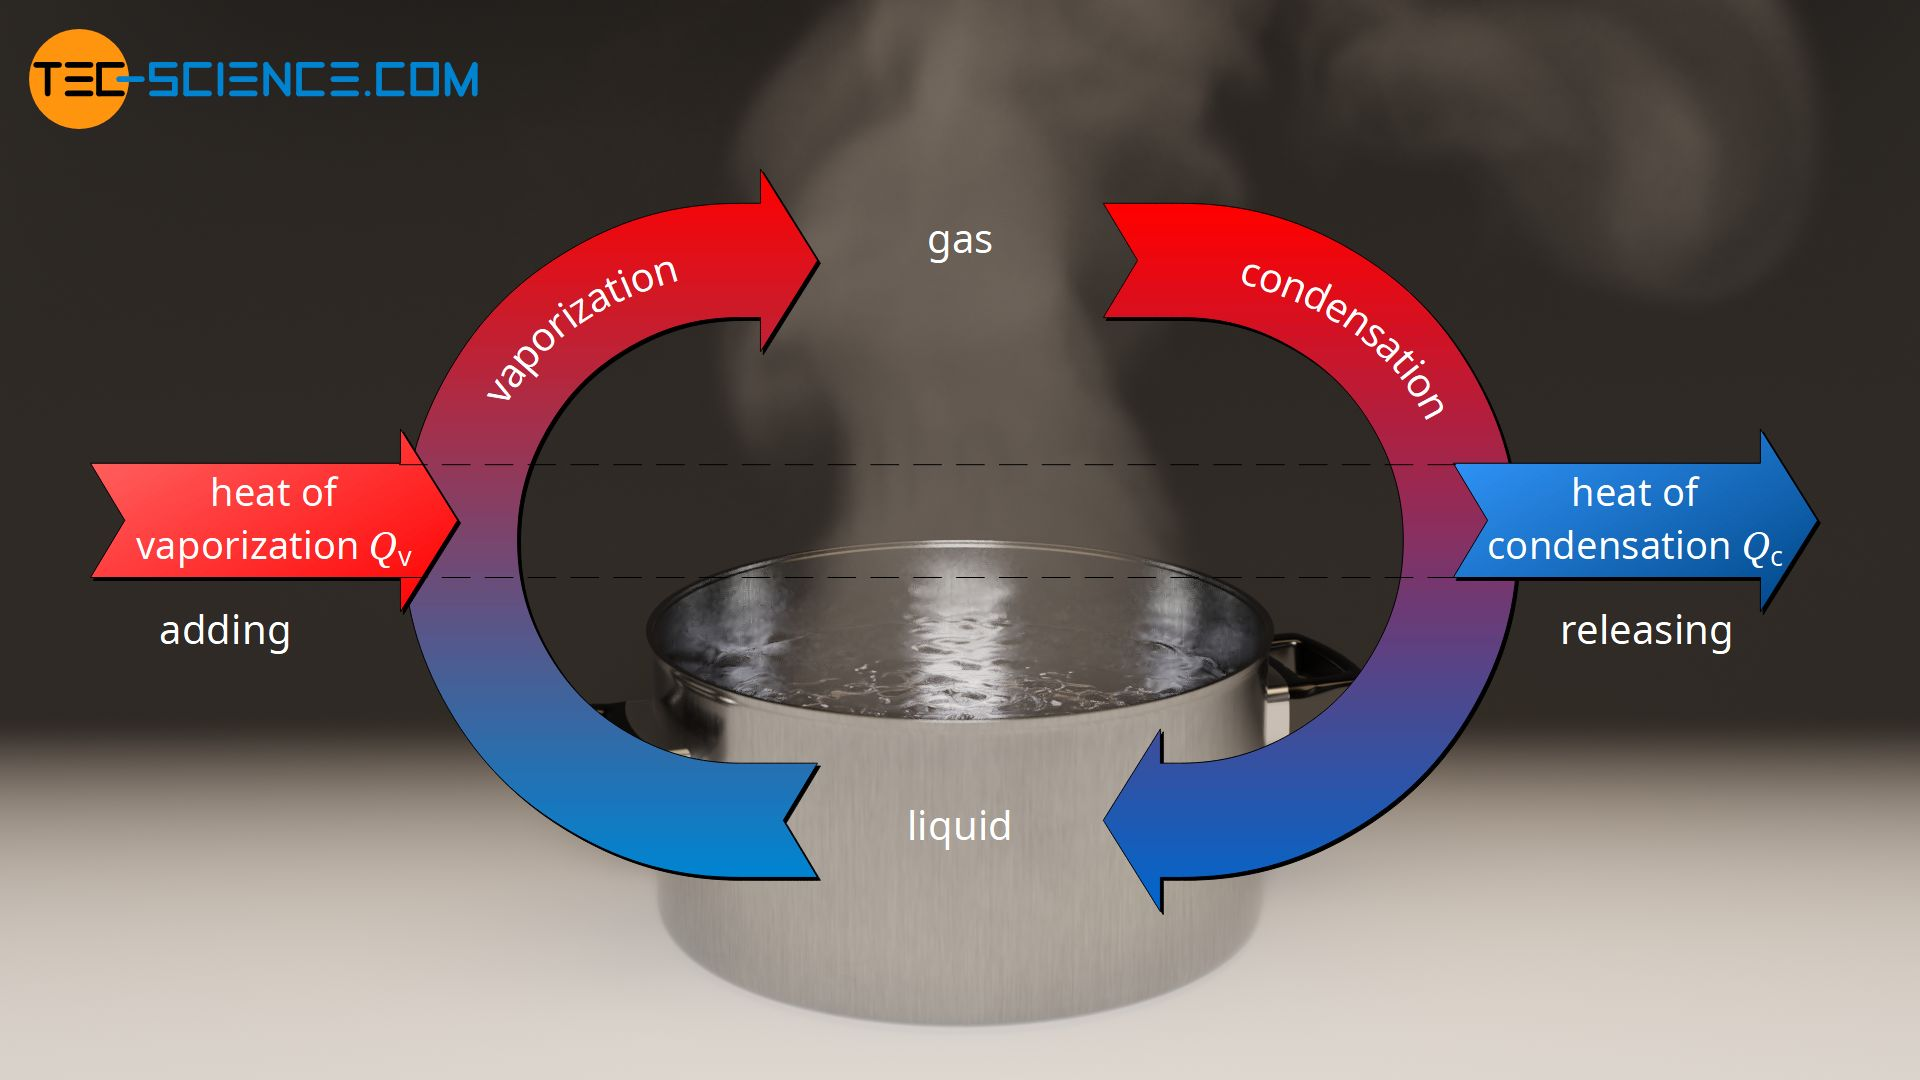 Energy flow diagram of vaporization and condensation